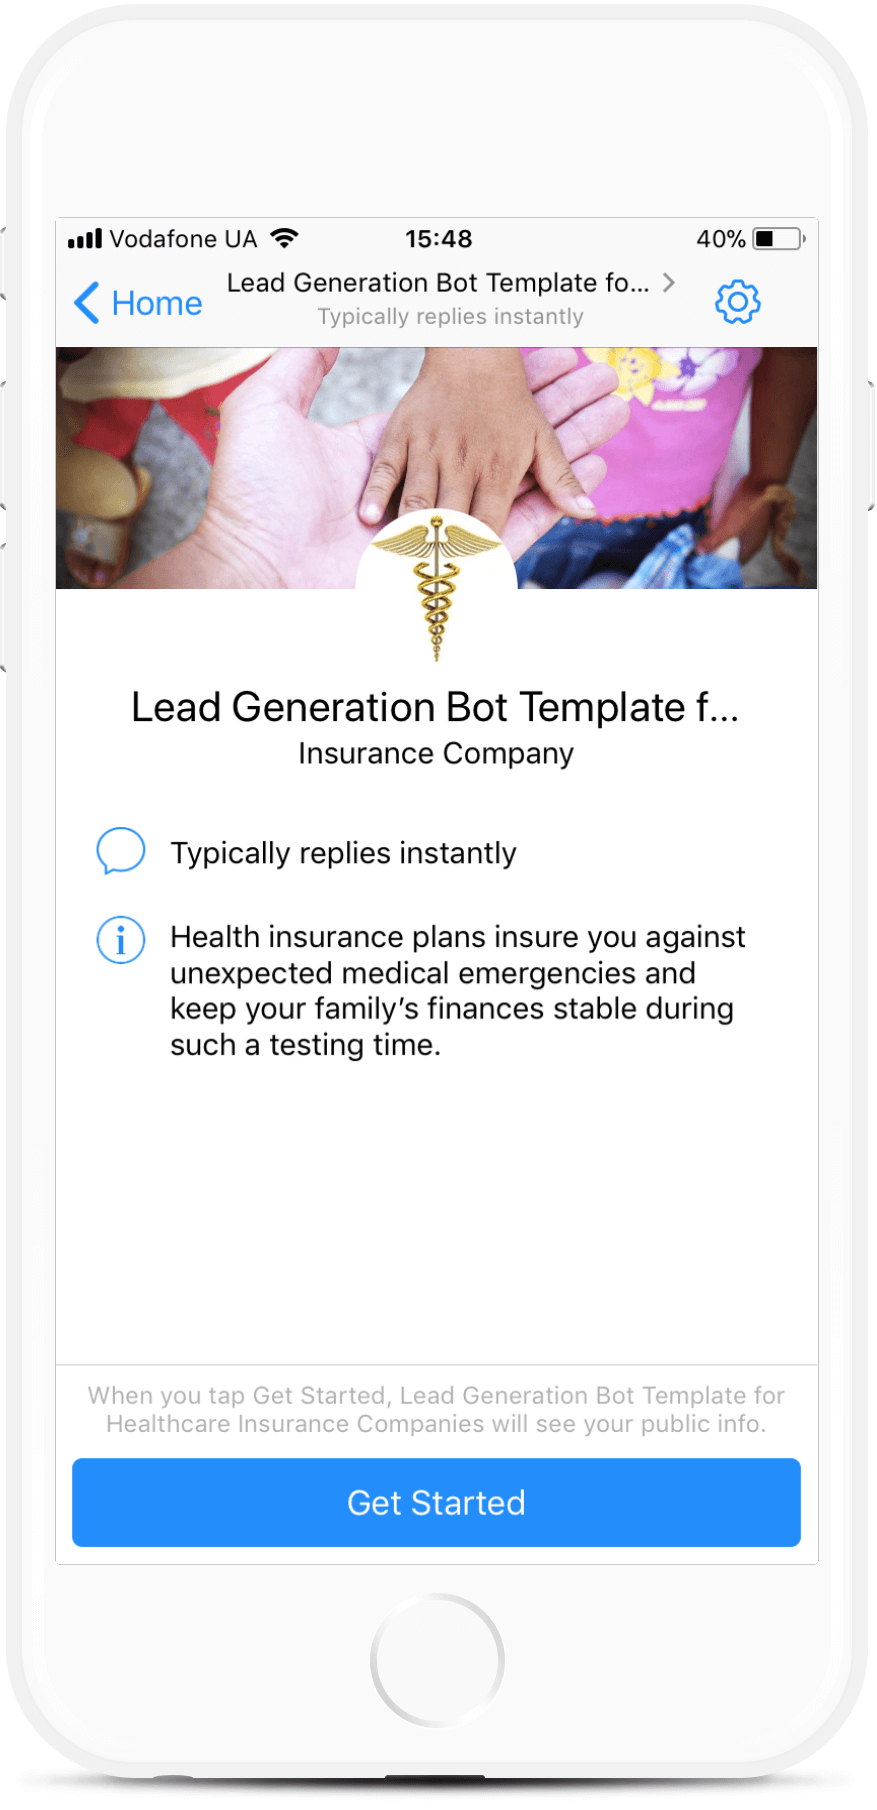 Lead Generation Bot Template for Insurance Companies